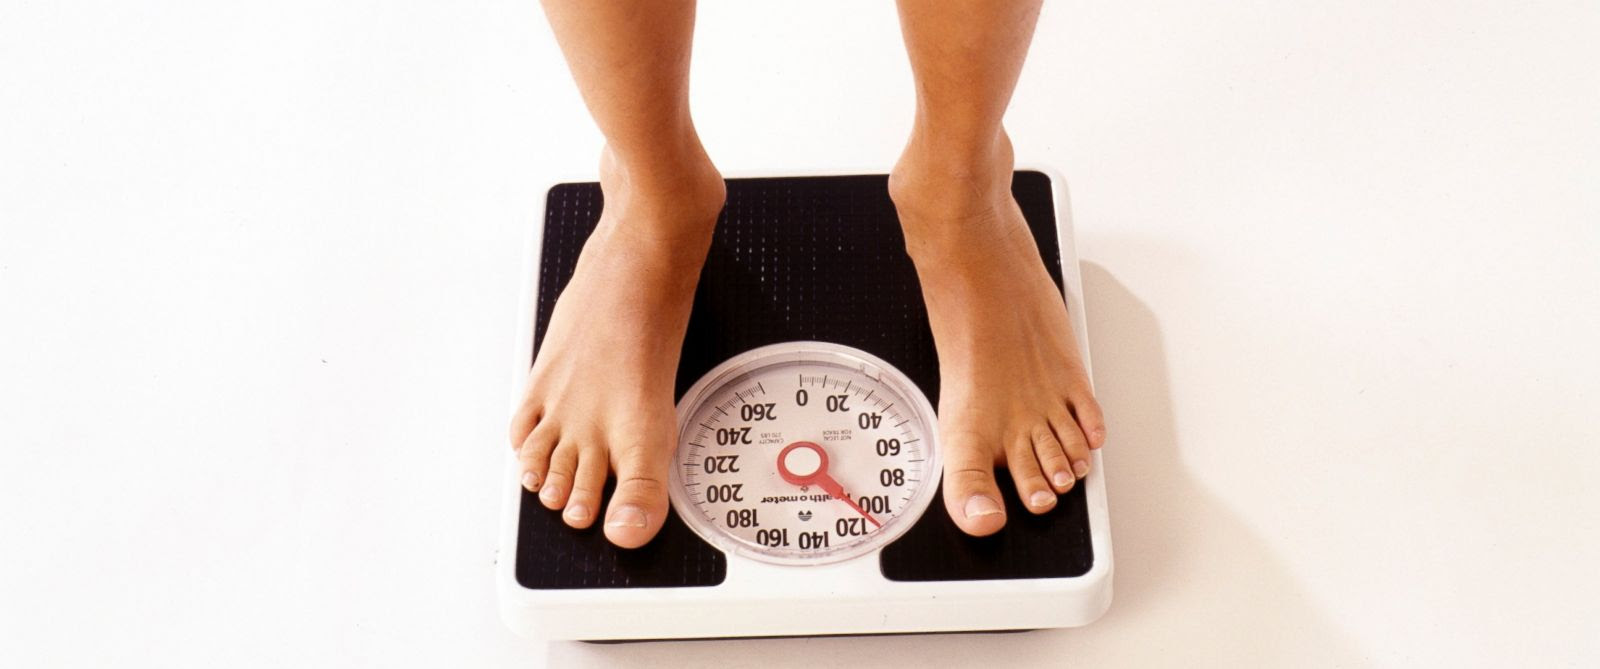 are scales with body fat percentage accuracy